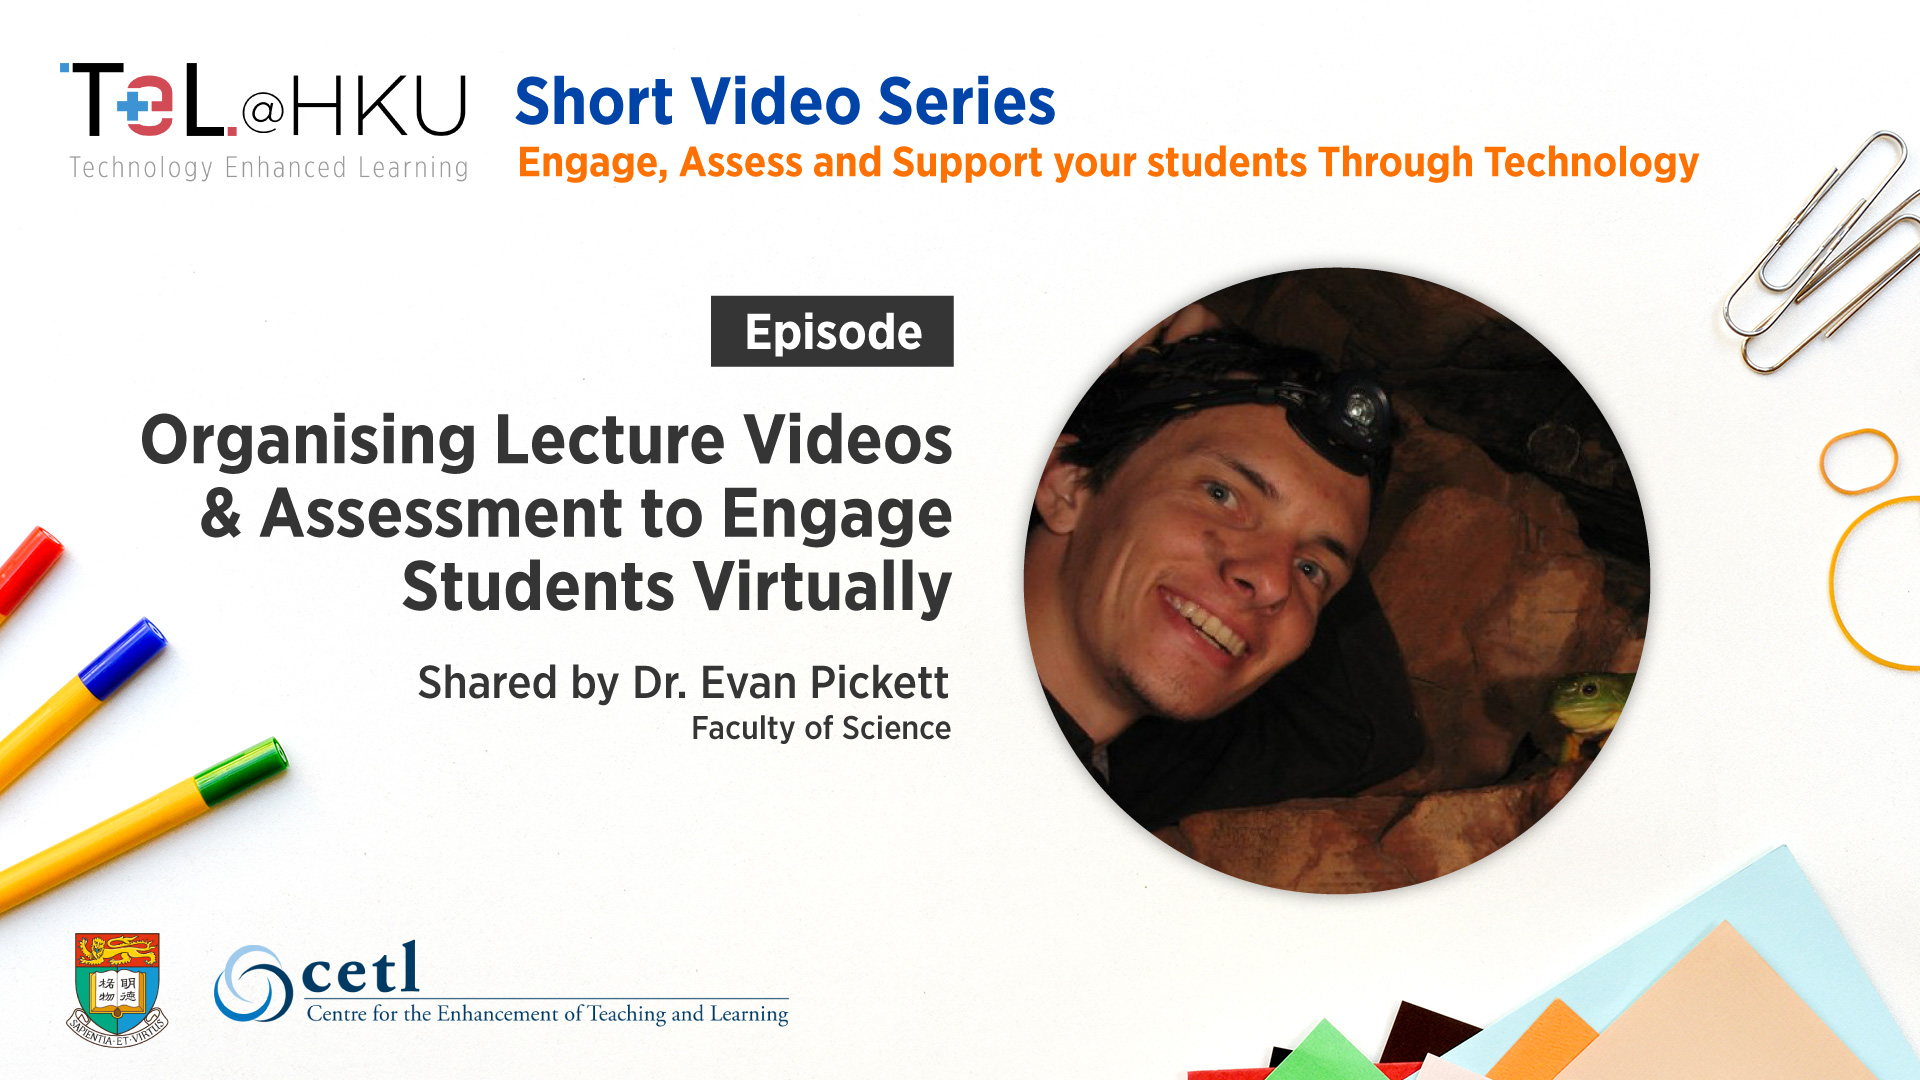 TeL@HKU Short Video Series – Organising Lecture Videos and Assessment to Engage Students Virtually shared by Dr. Evan Pickett